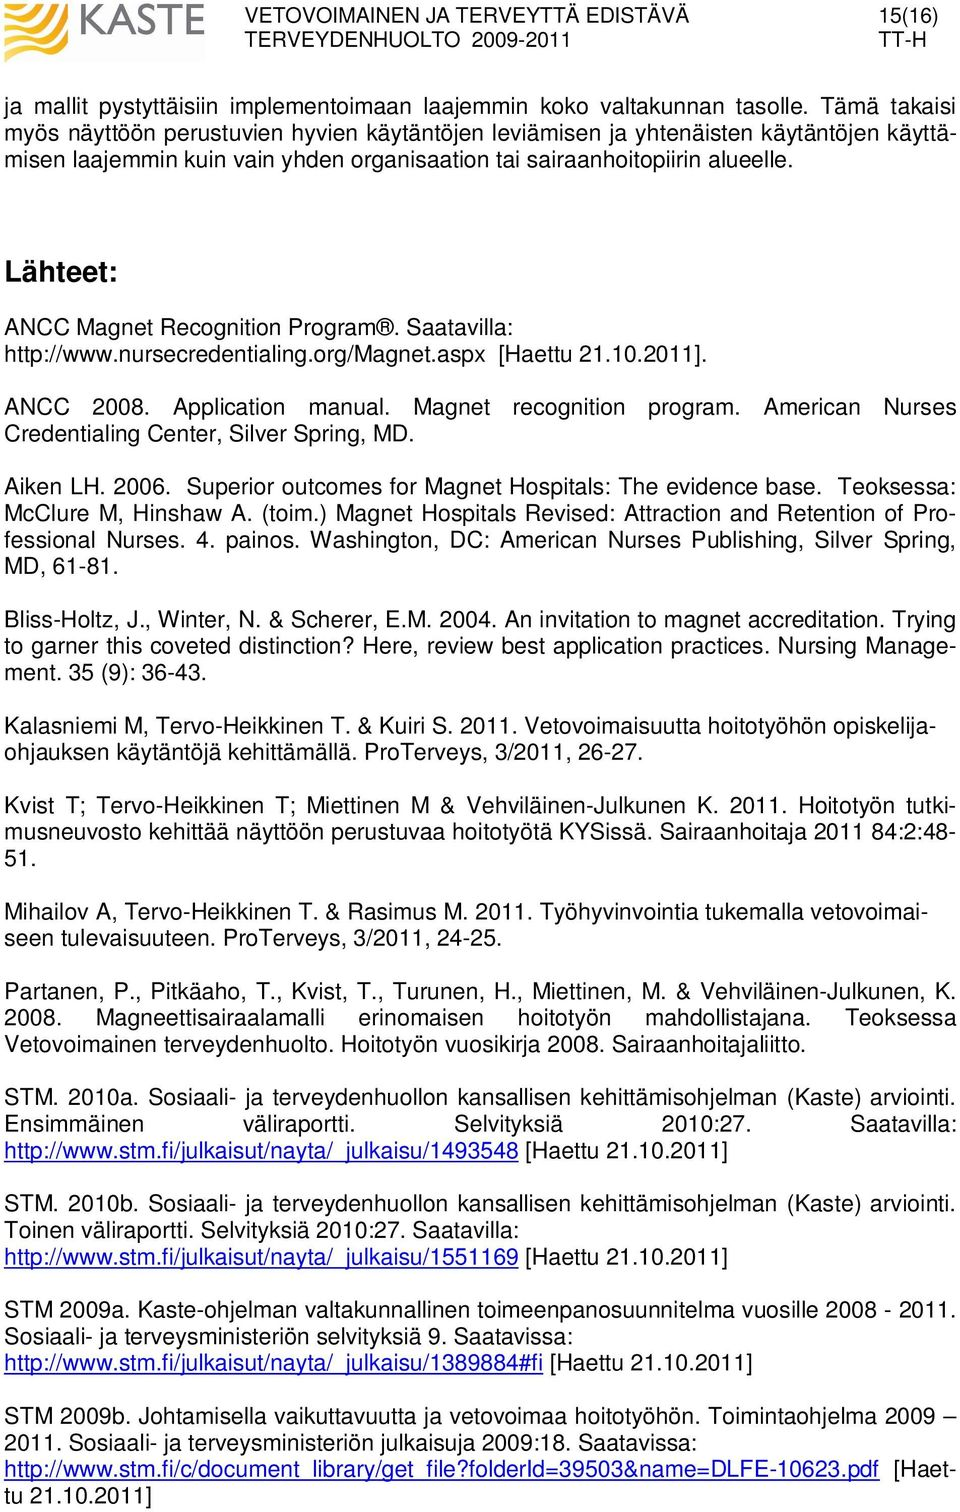 Lähteet: ANCC Magnet Recognition Program. Saatavilla: http://www.nursecredentialing.org/magnet.aspx [Haettu 21.10.2011]. ANCC 2008. Application manual. Magnet recognition program.